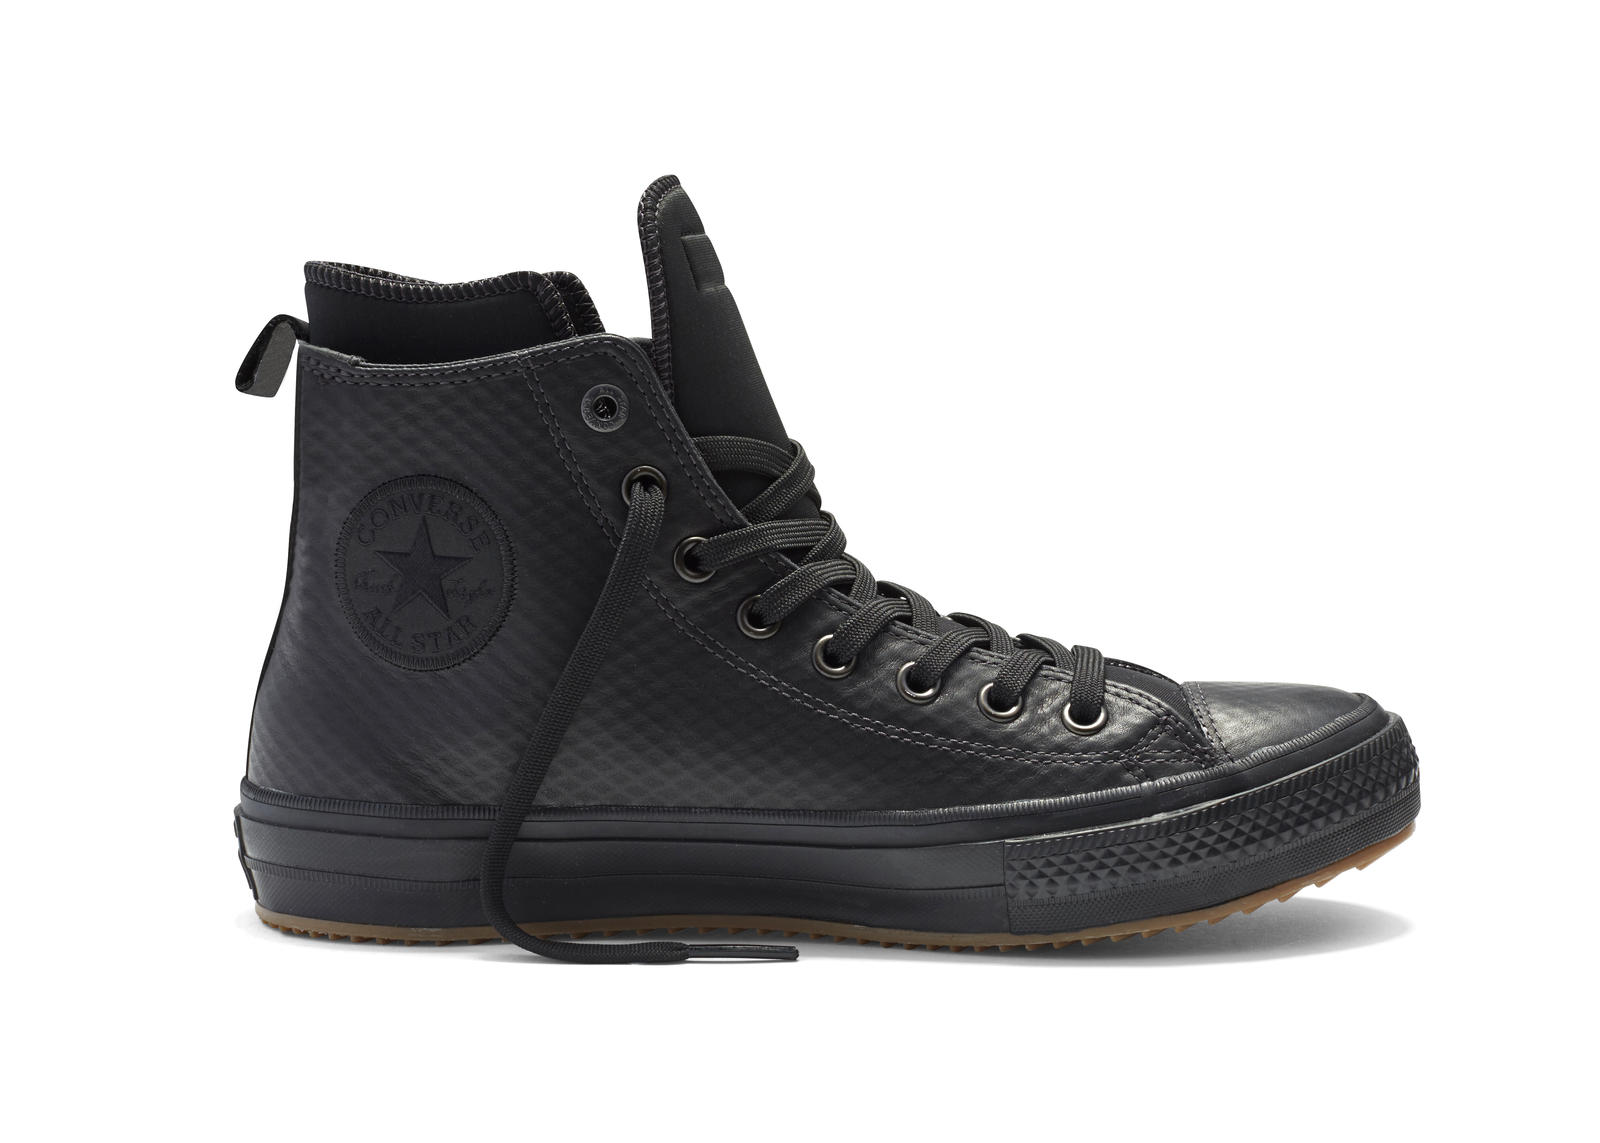 Converses All Star counter Climate Waterproof